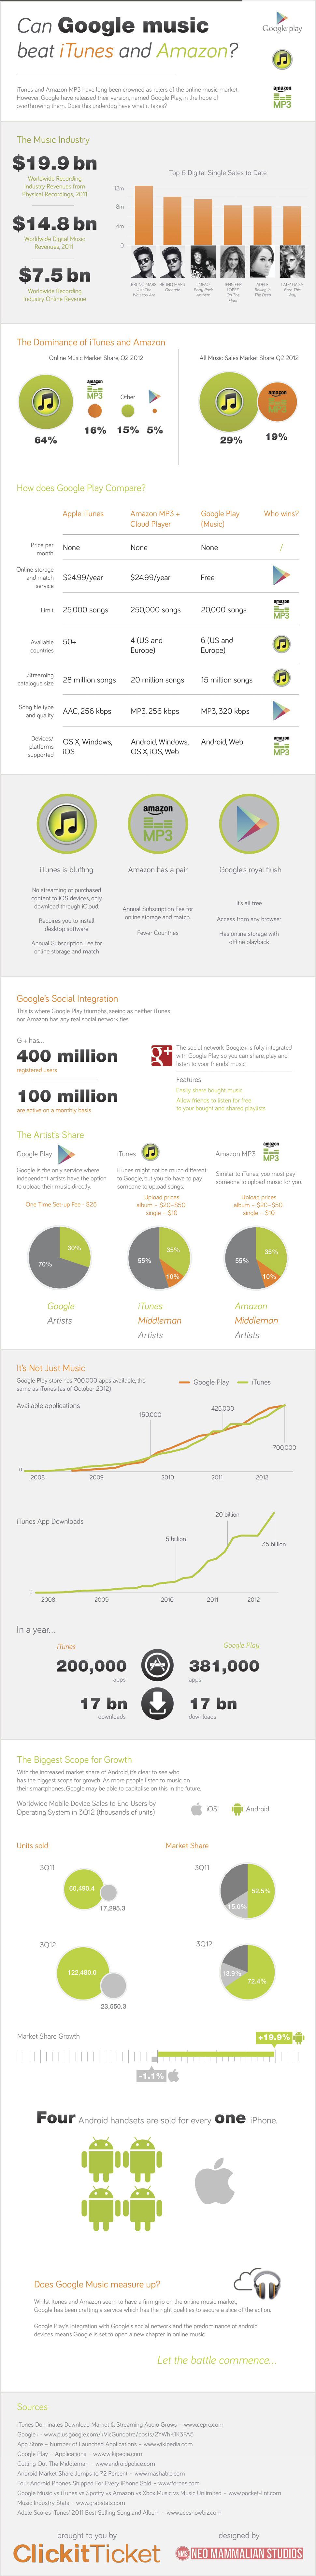 Google Play Music Attack-Infographic